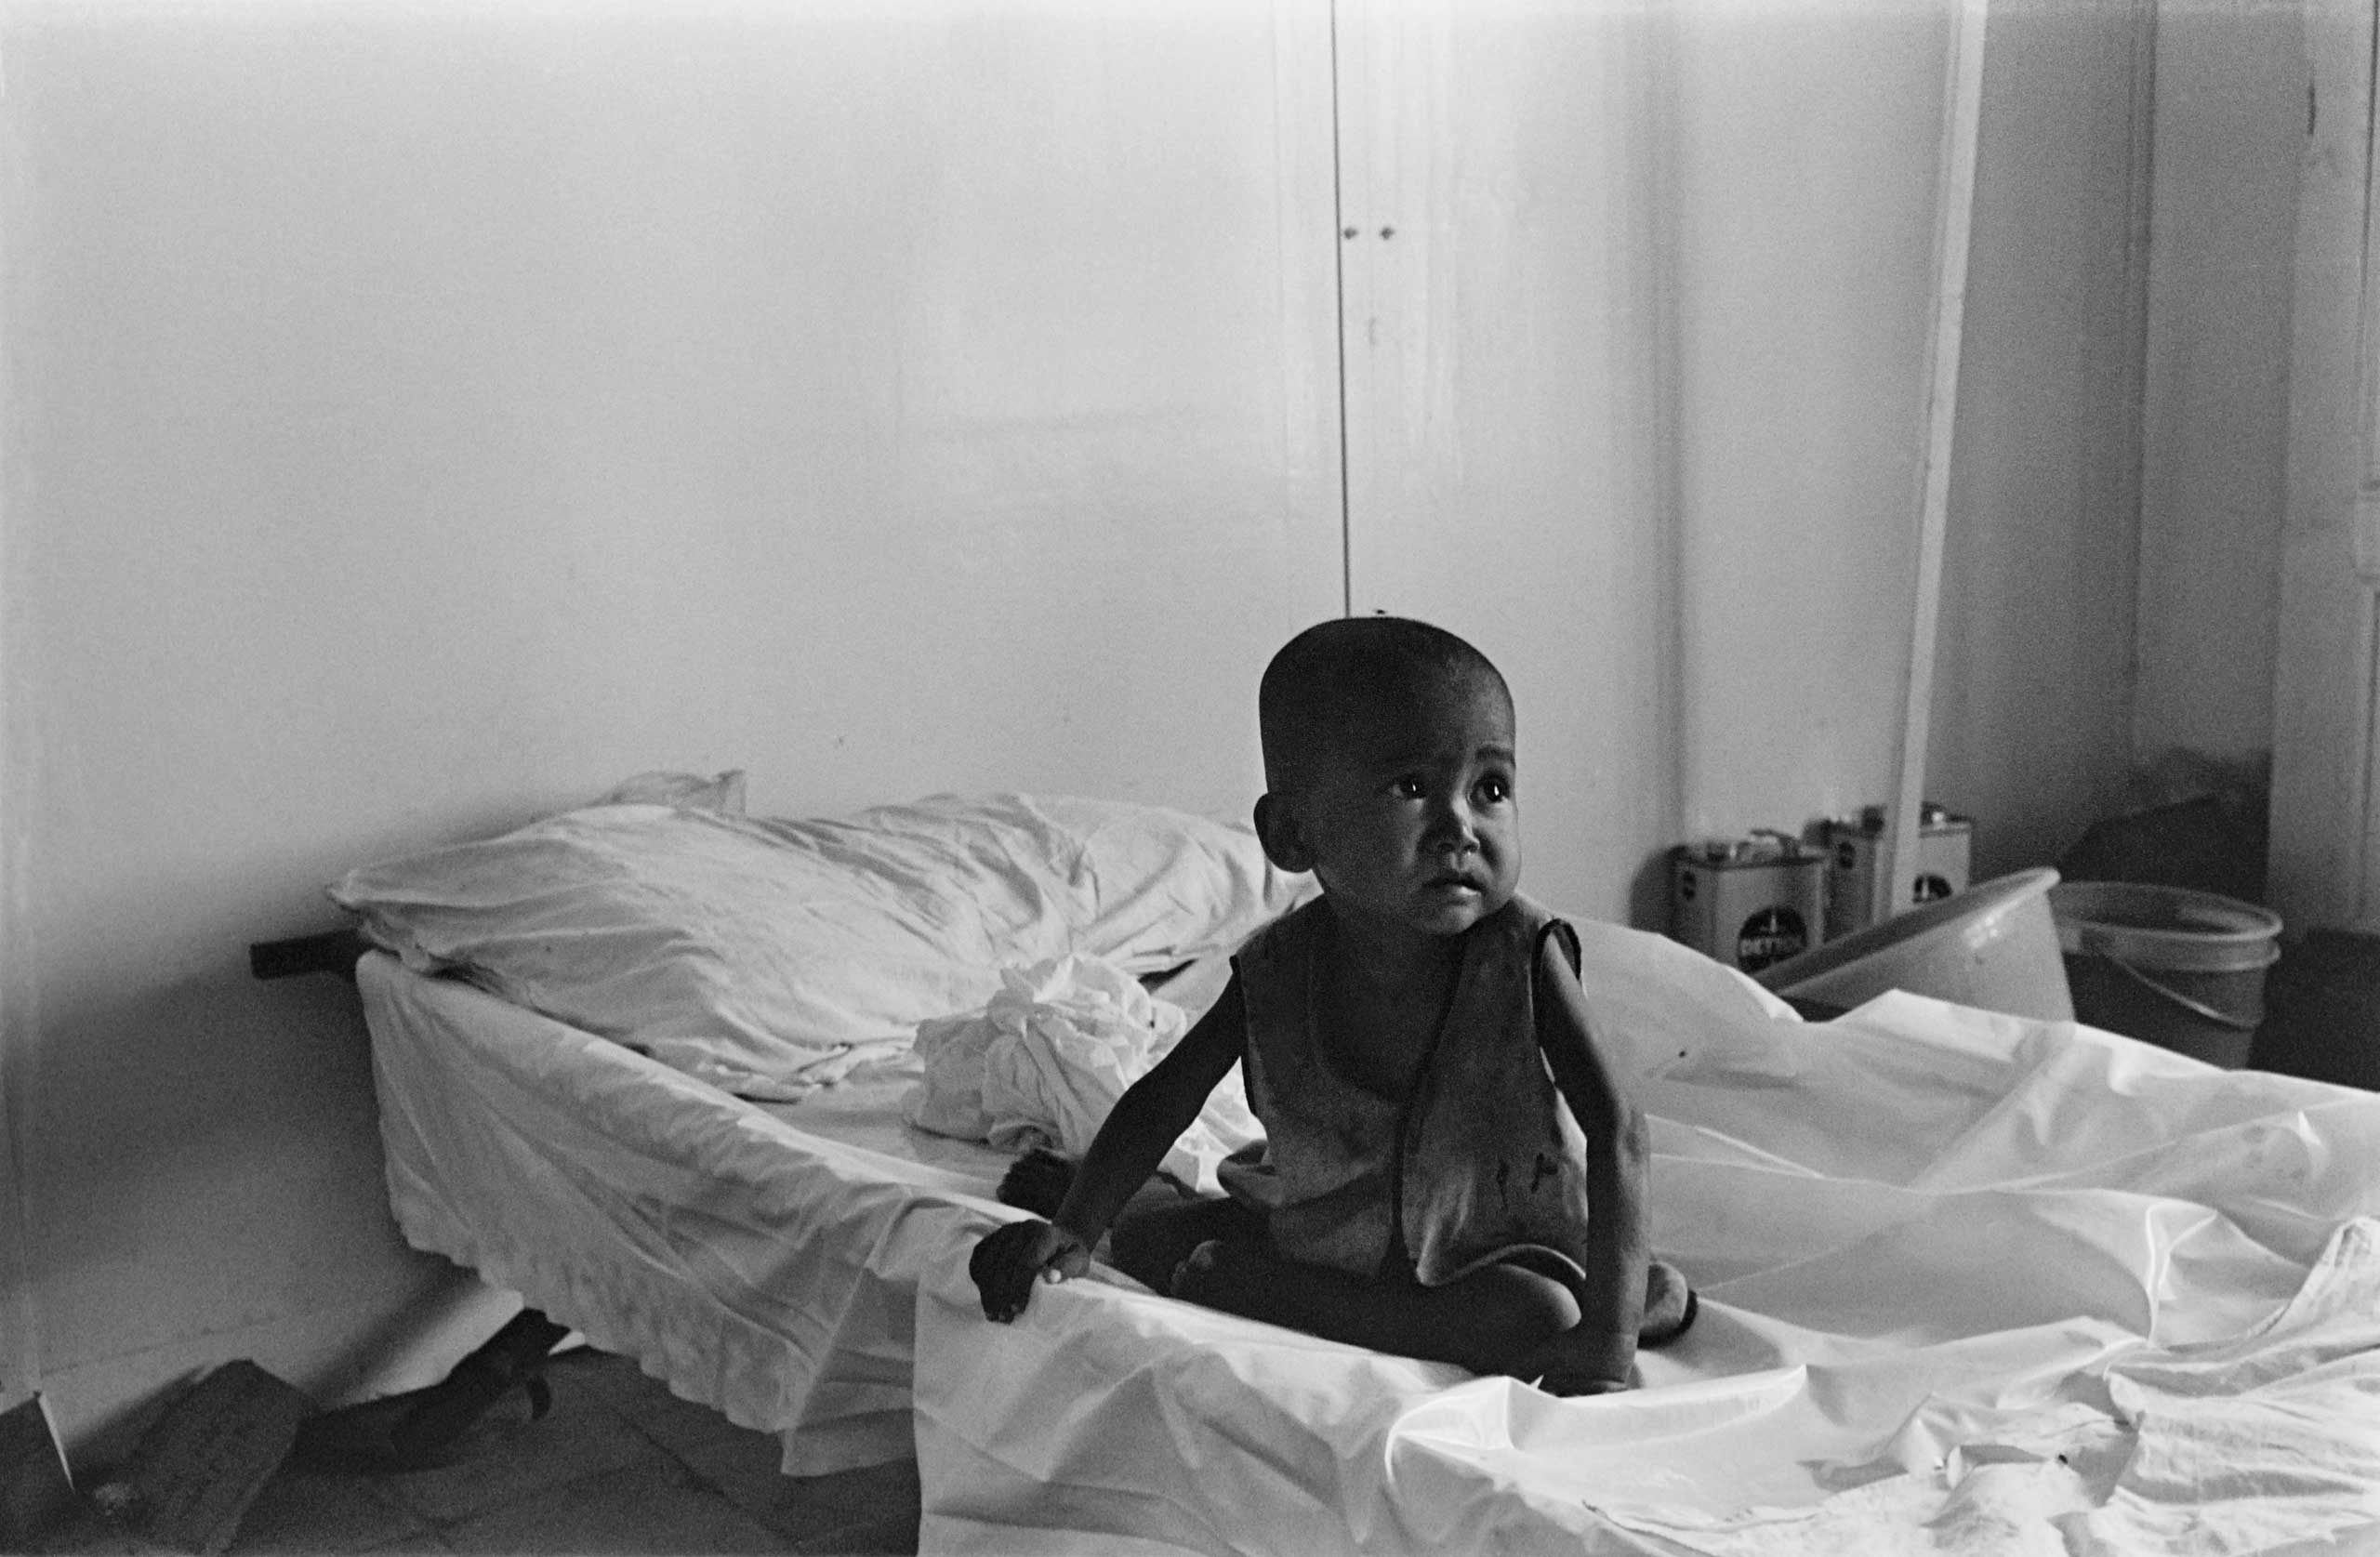 Young Cambodian child at a hospital in Phnom Penh, in March 1975.